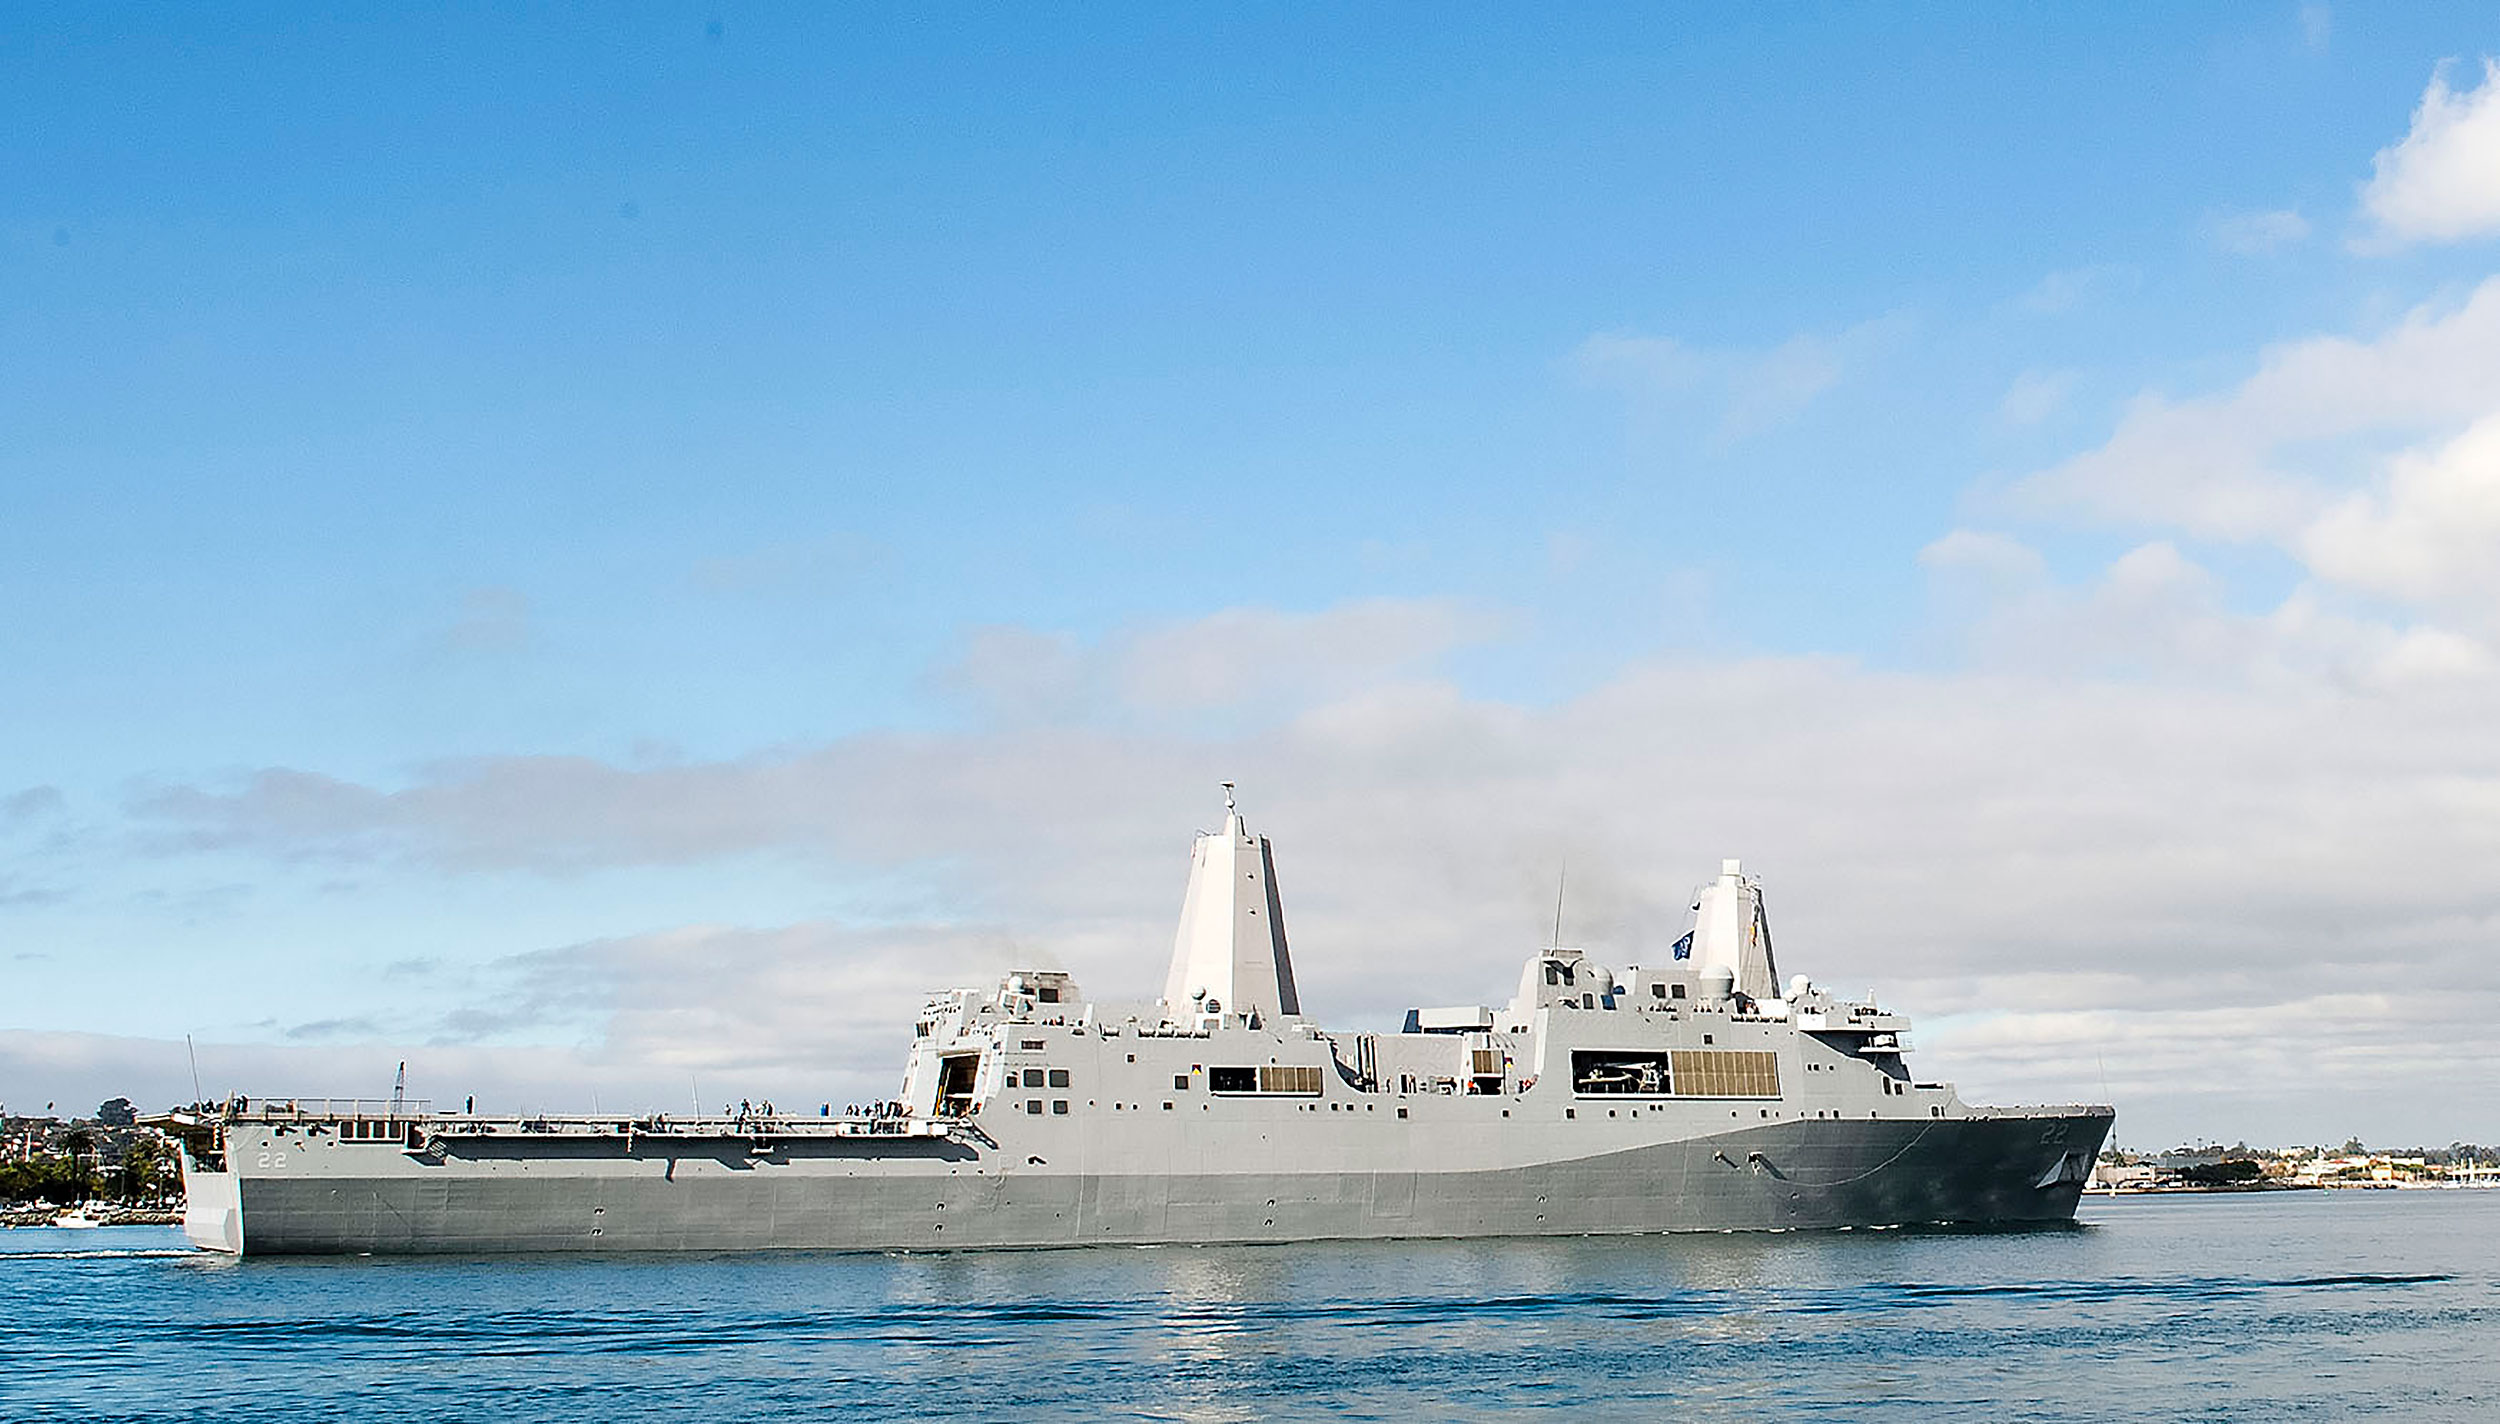 Covid-19 cases discovered on one US Navy ship in Middle East, suspected cases on a second